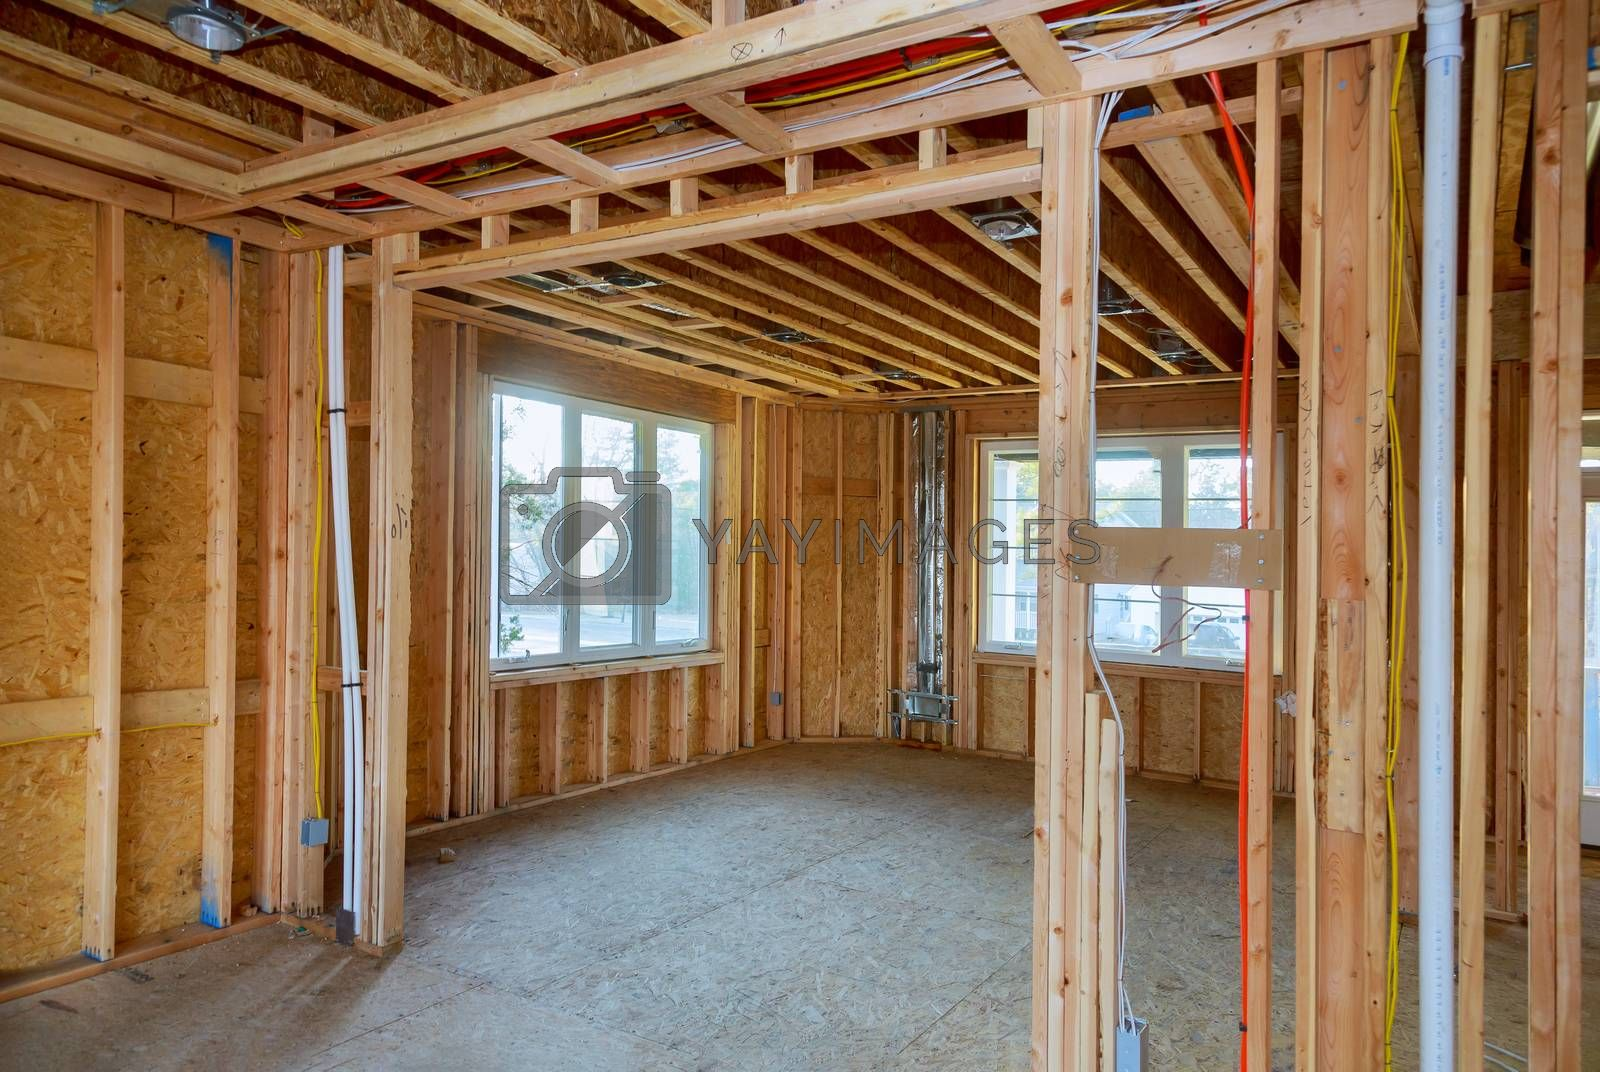 House in American beams the view of interior of frame under construction residential home